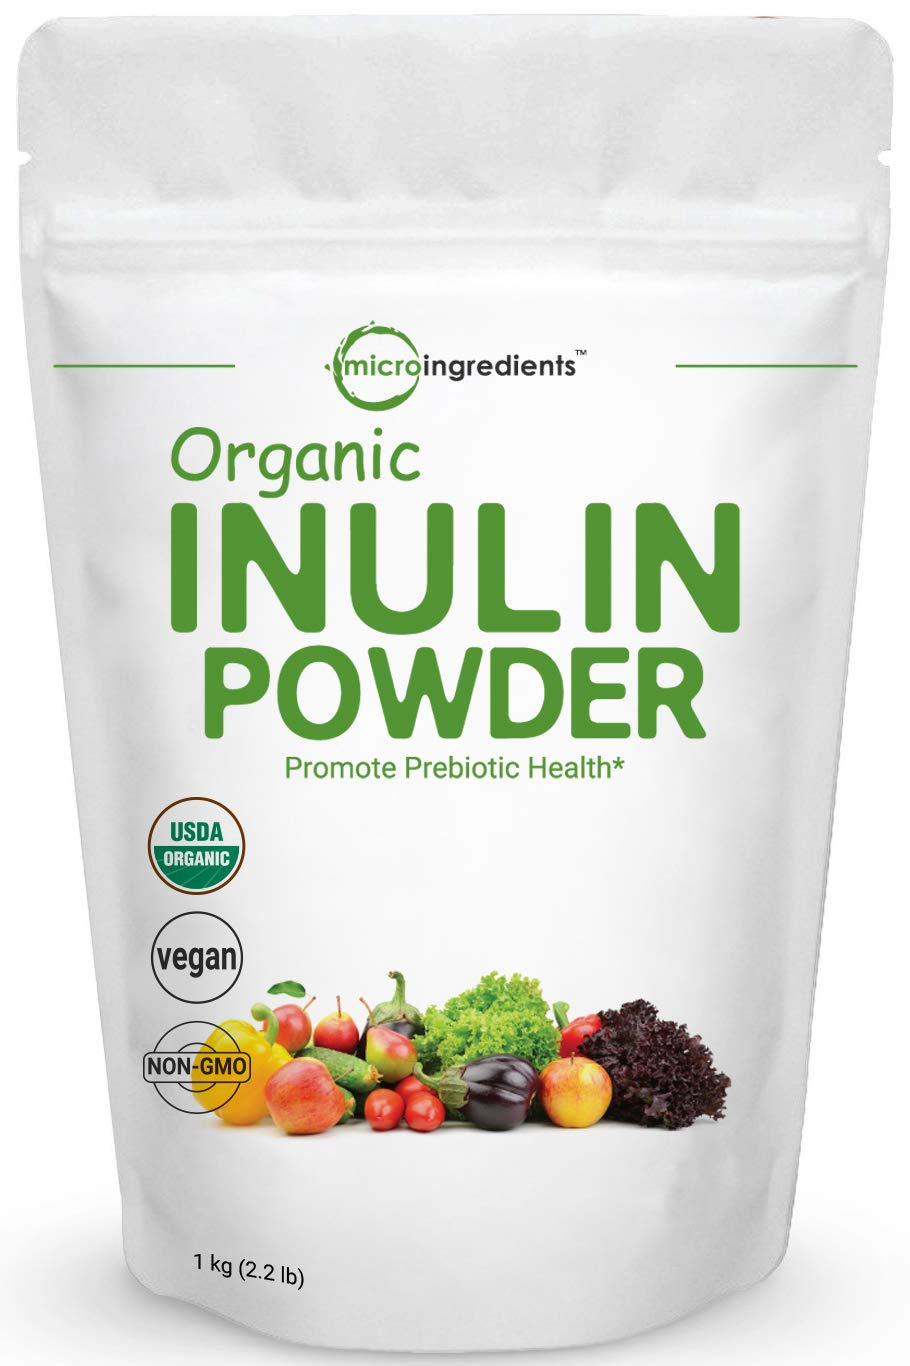 Organic Inulin FOS Powder (Jerusalem Artichoke), 1KG (35 Ounce), Prebiotic Intestinal Support, Colon and Gut Health, Natural Water Soluble Fibers for Smoothie and Drinks, No GMOs and Vegan Friendly by Micro Ingredients